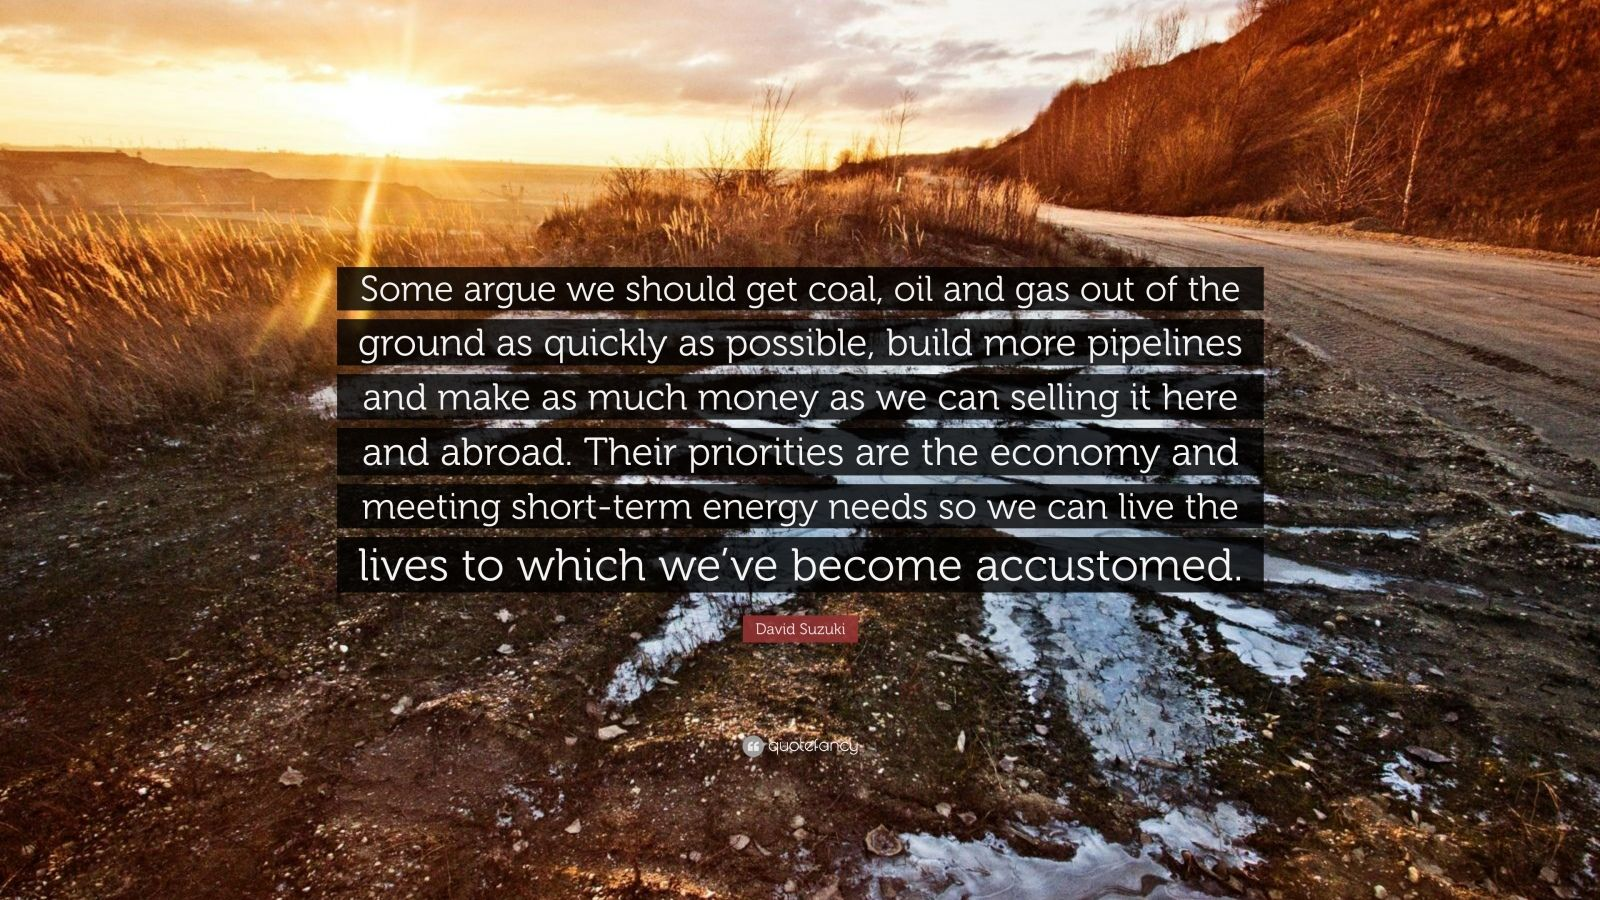 "David Suzuki Quote: ""Some argue we should get coal, oil and gas out of the ground as quickly as possible, build more pipelines and make as much money as we can selling it here and abroad. Their priorities are the economy and meeting short-term energy needs so we can live the lives to which we've become accustomed."""